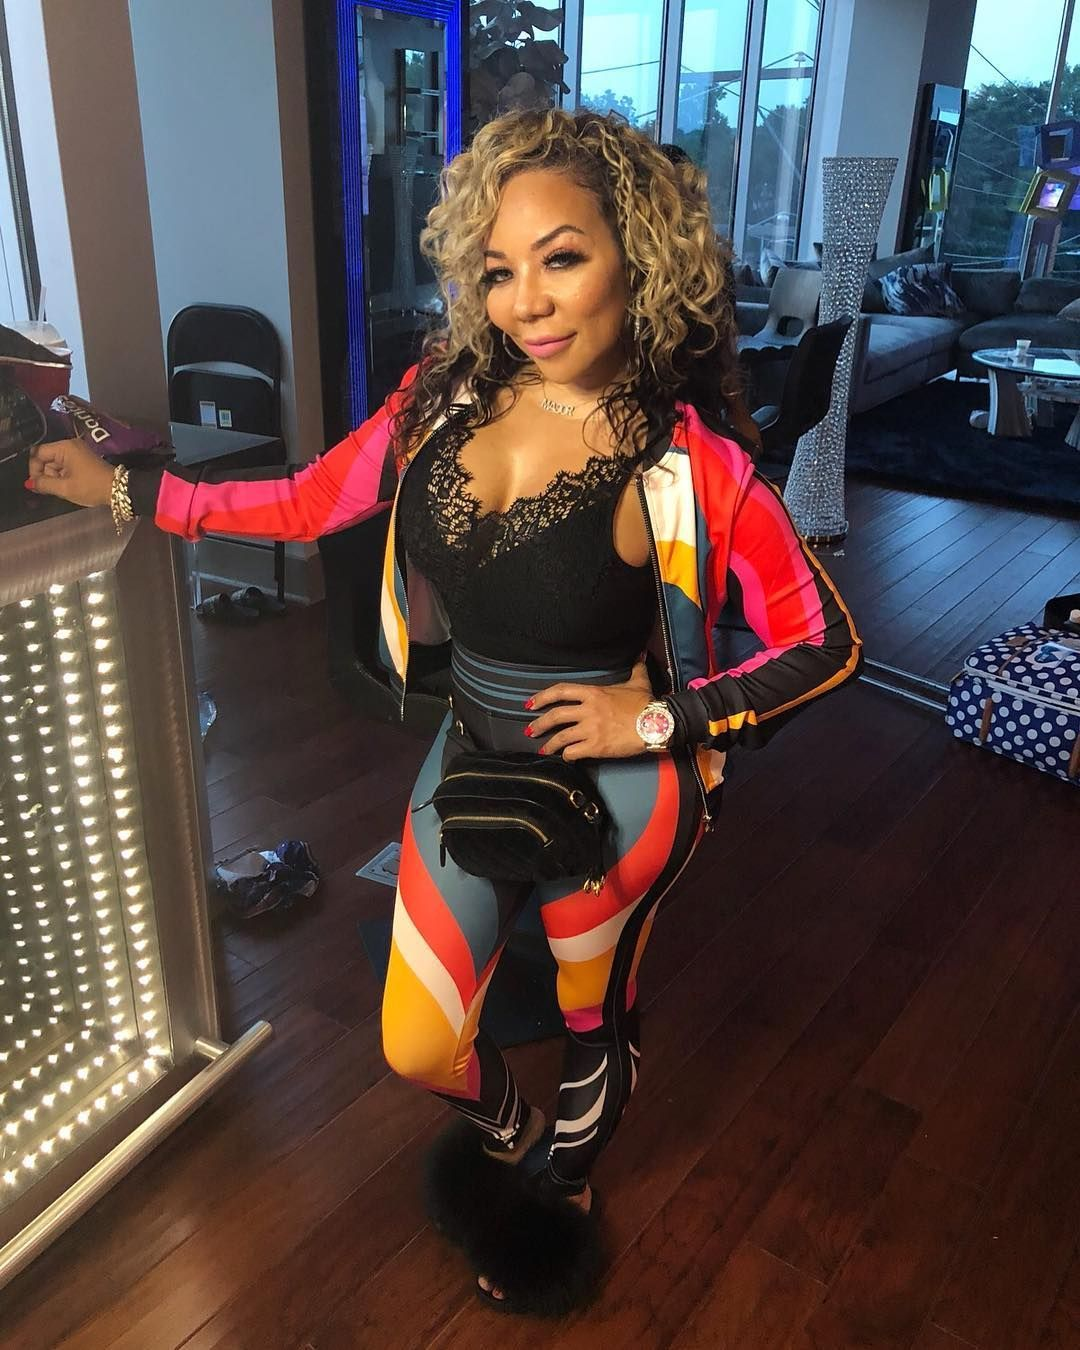 tiny-harris-shares-jaw-dropping-footage-from-her-la-home-and-impresses-fans